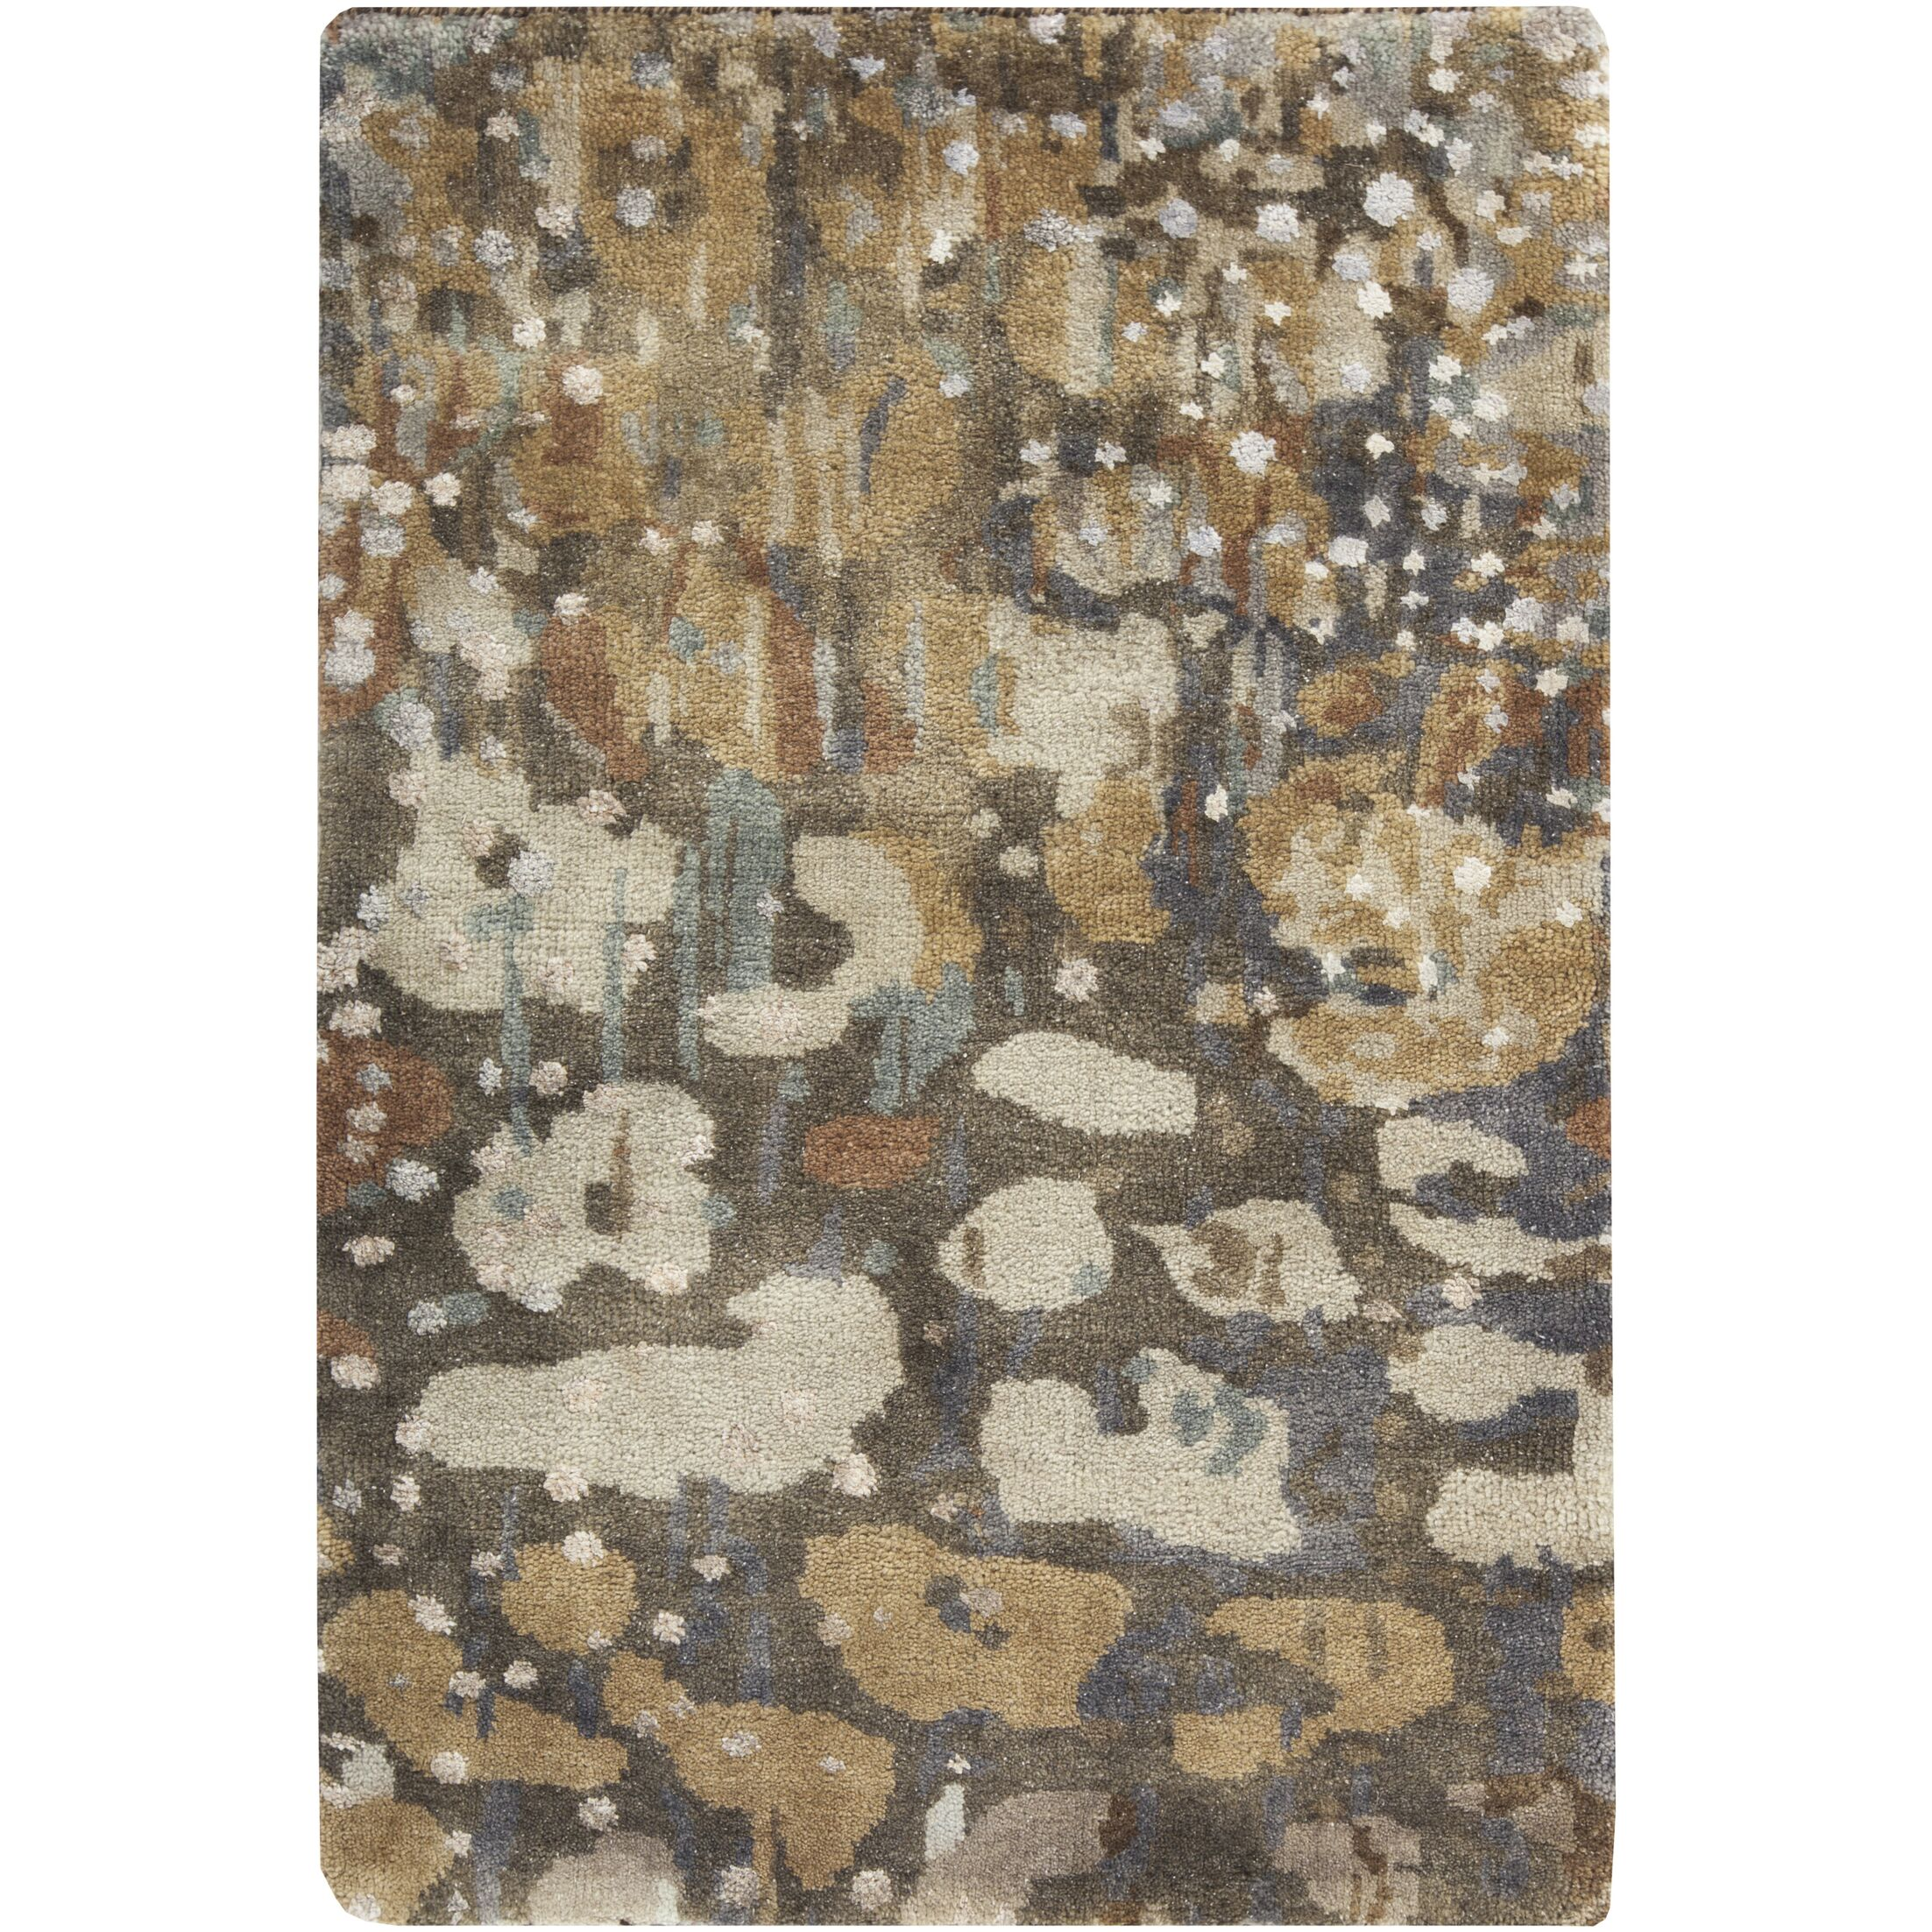 Eridani Hand-Knotted Dark Brown Area Rug Rug Size: Rectangle 5' x 8'